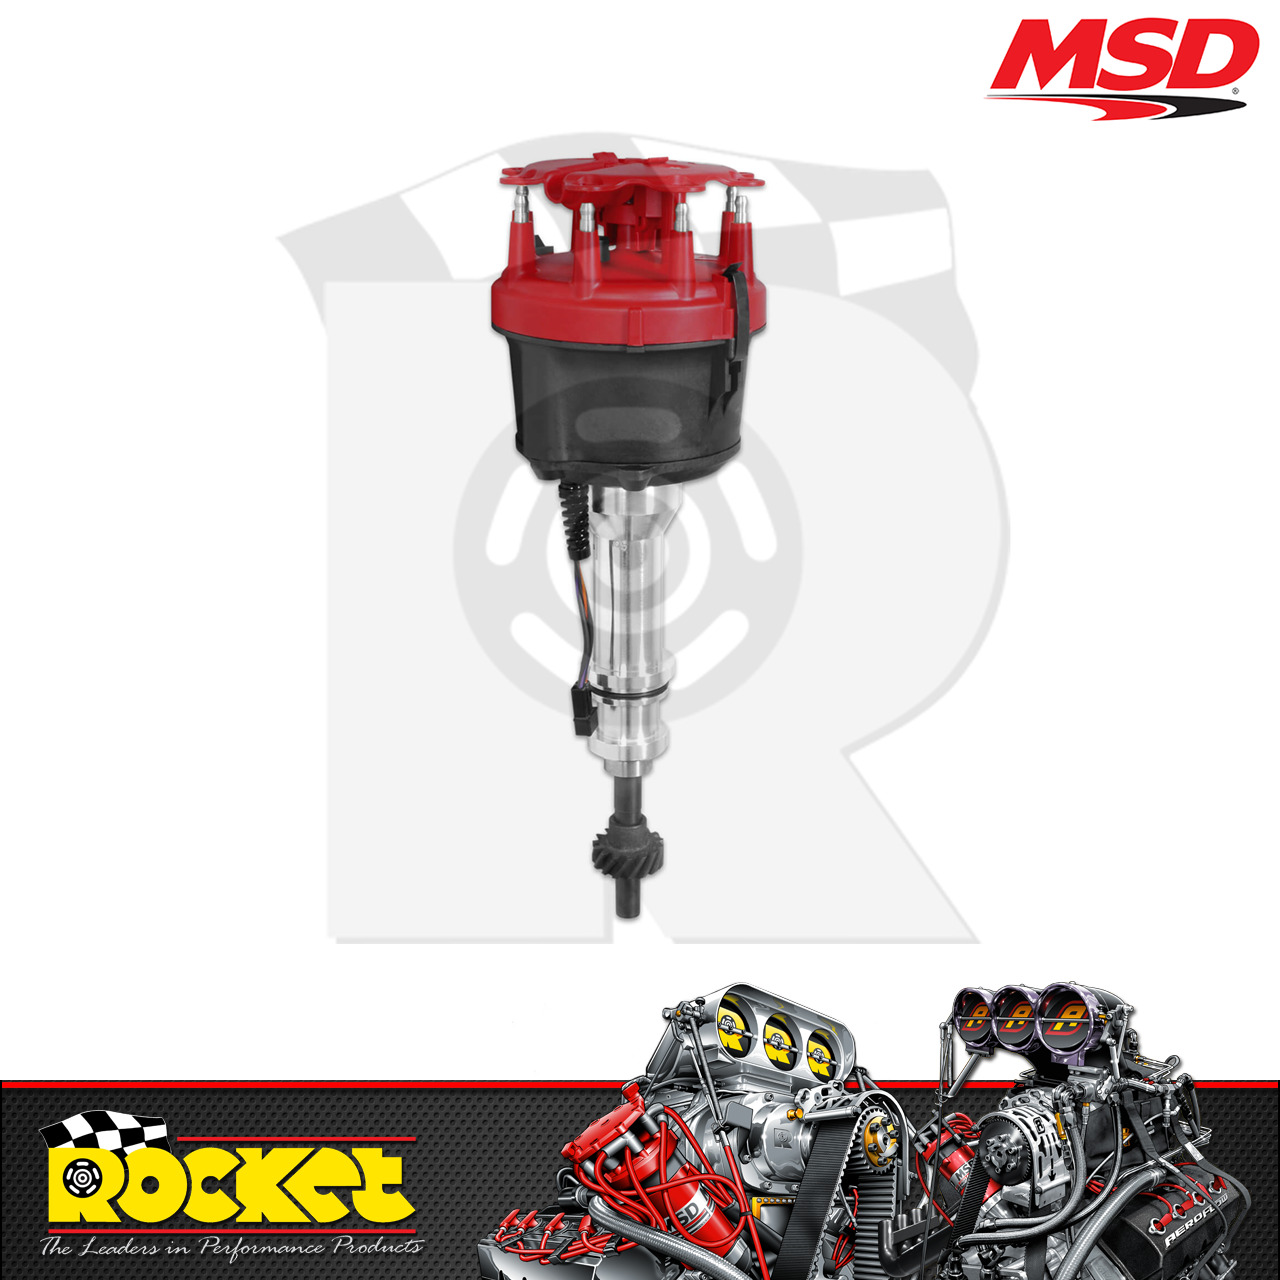 Msd Pro Billet Distributor Ford 302 351c 429 460 V8 Msd8580 Wiring 1 Of 3only 2 Available